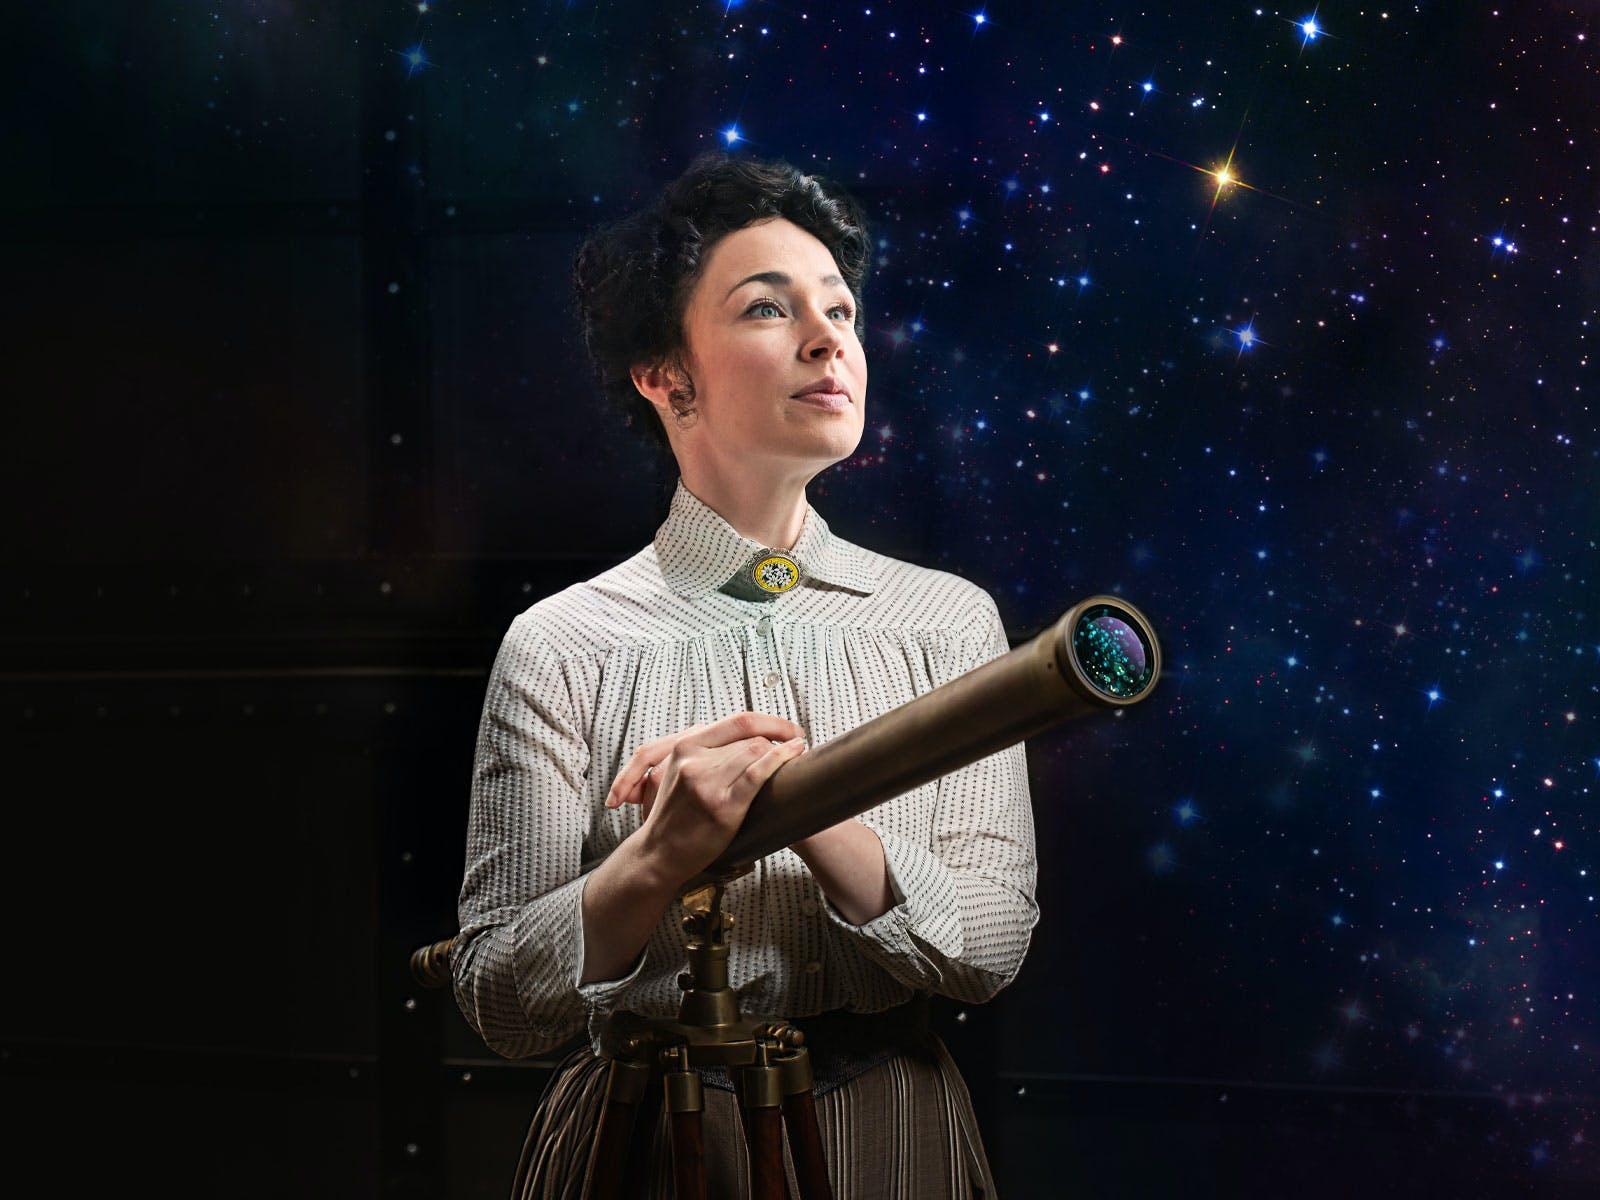 Silent Sky: Story of women astronomers told with warmth